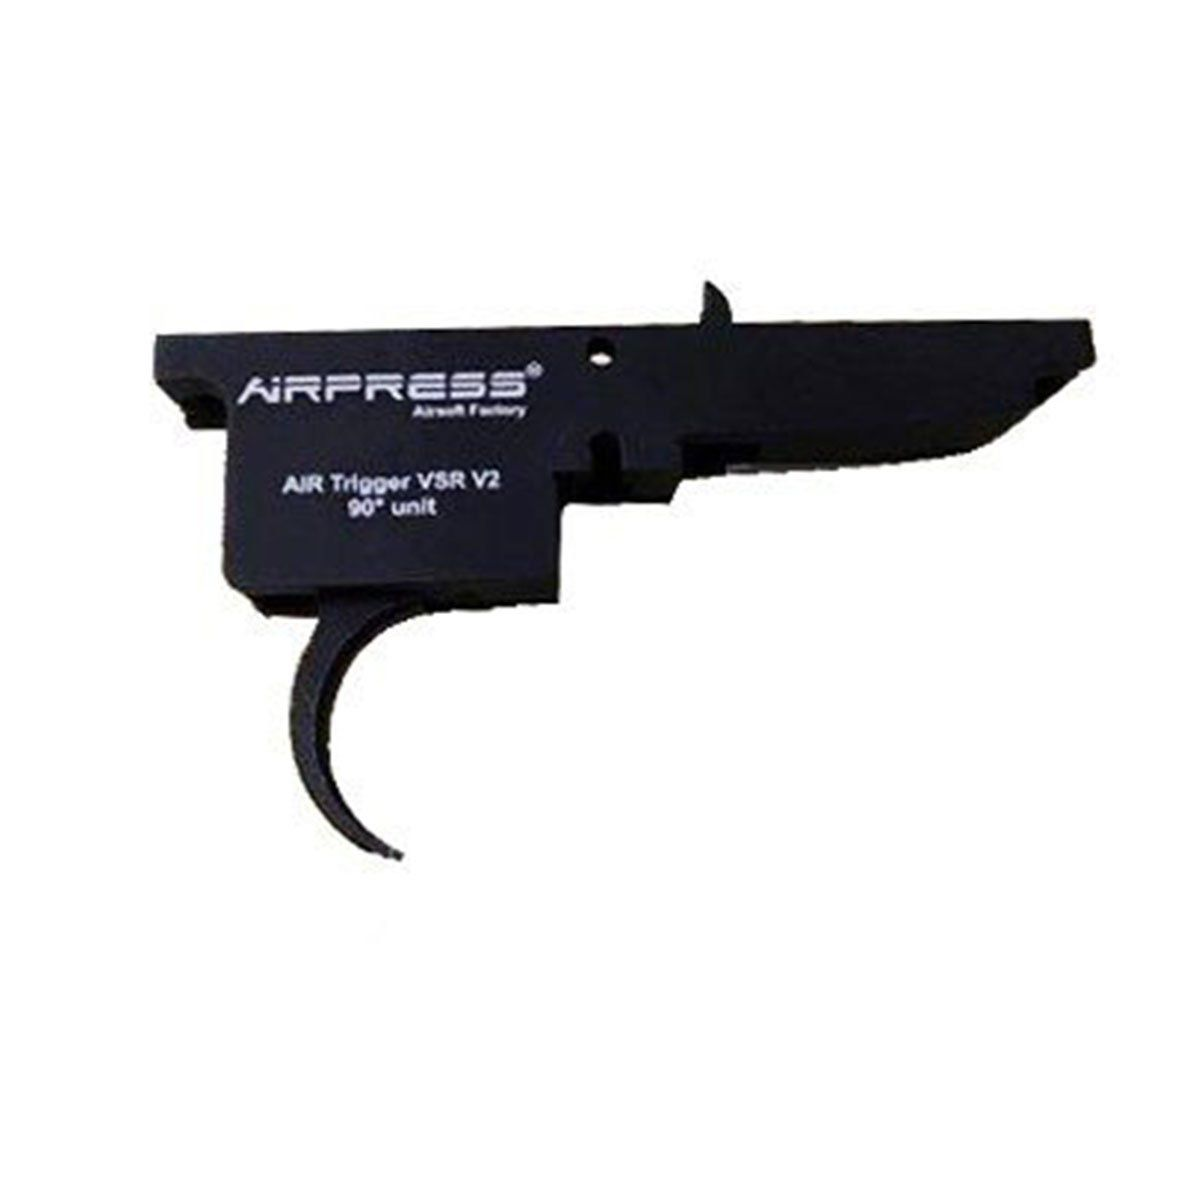 Air Trigger VSR V2 AirPress